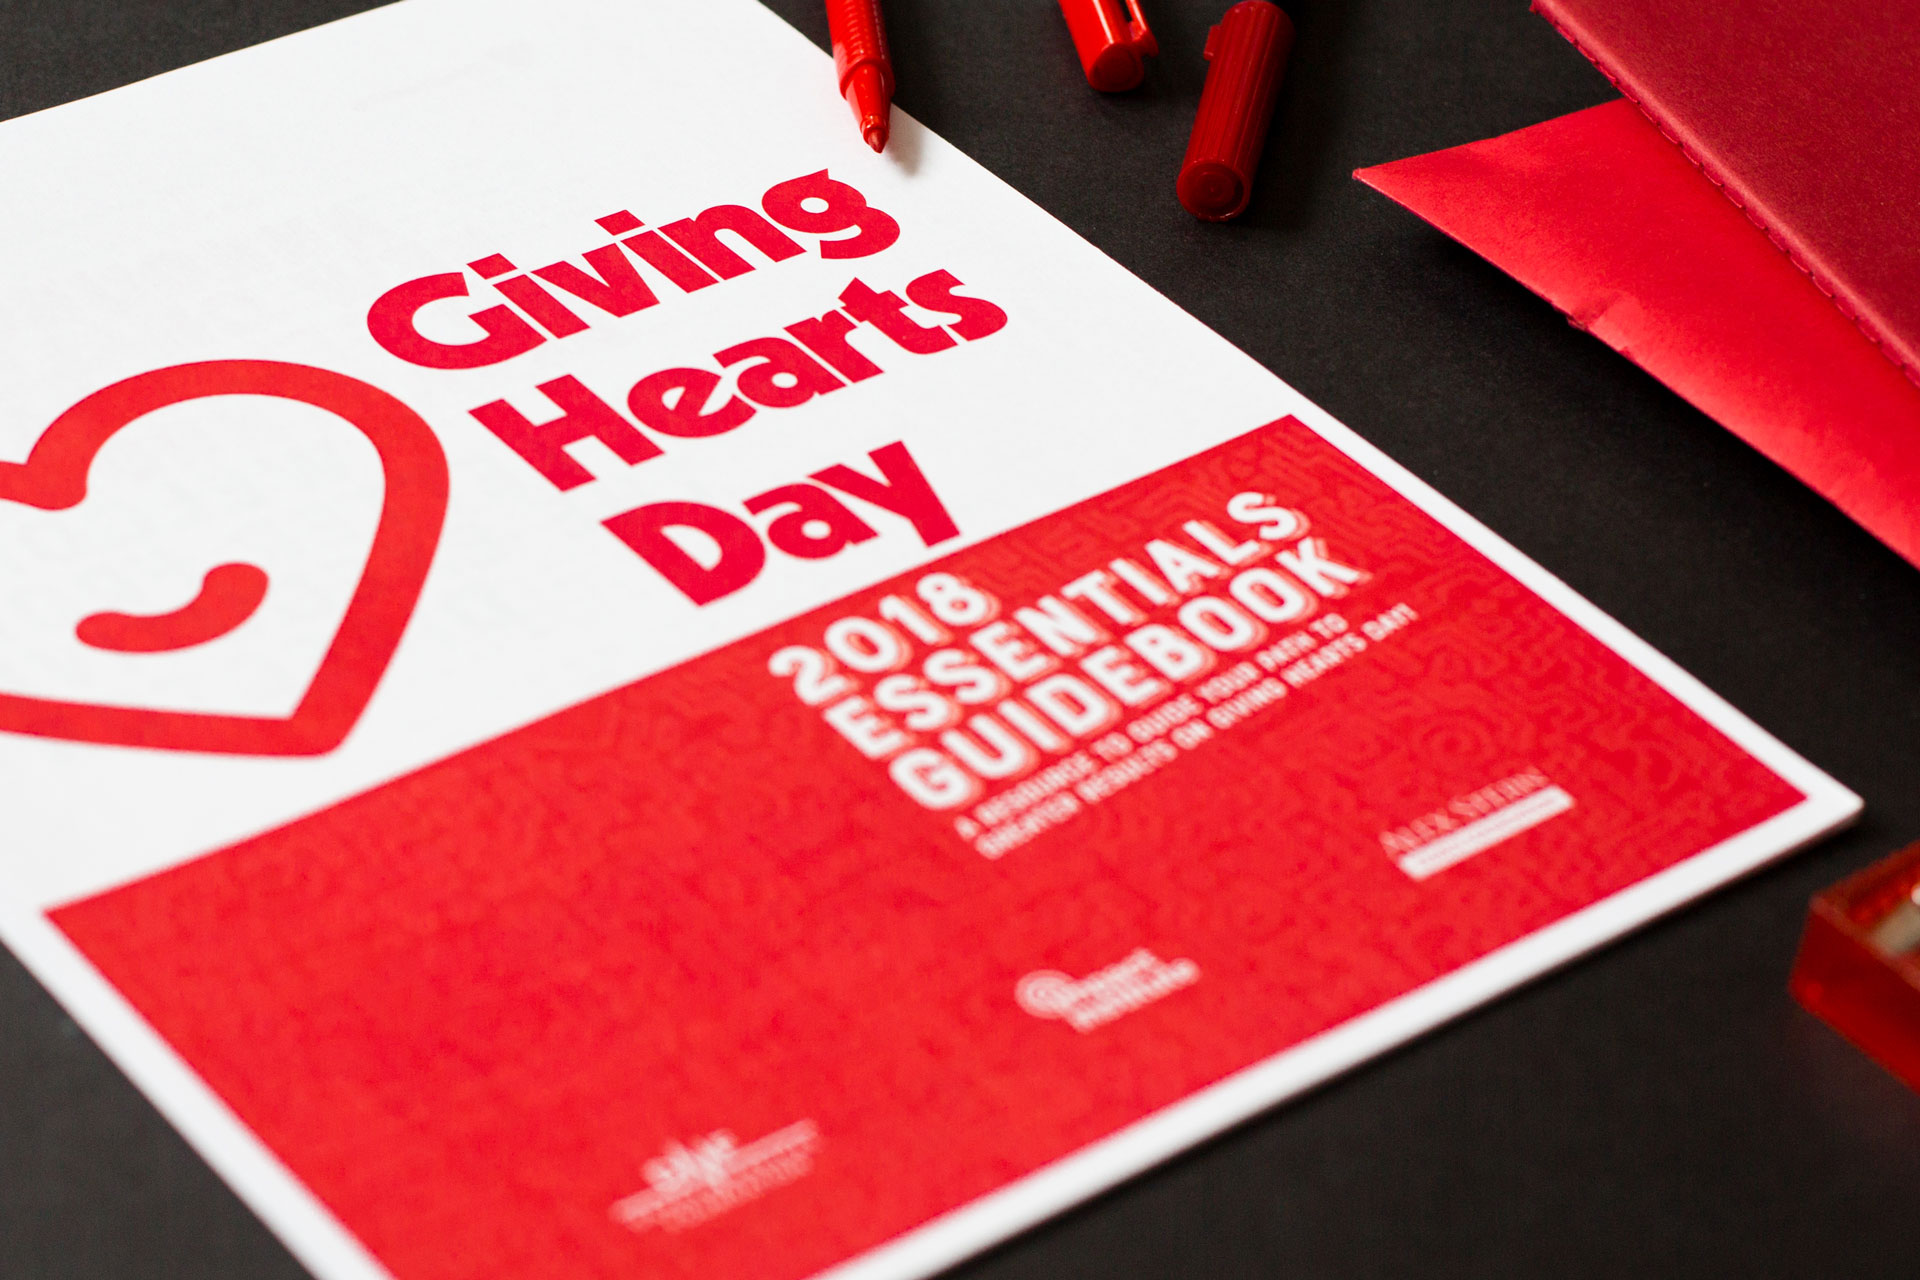 Close-up of Giving Hearts Day 2018 Essentials Guidebook printed laying on a dark background next to red journals and markers